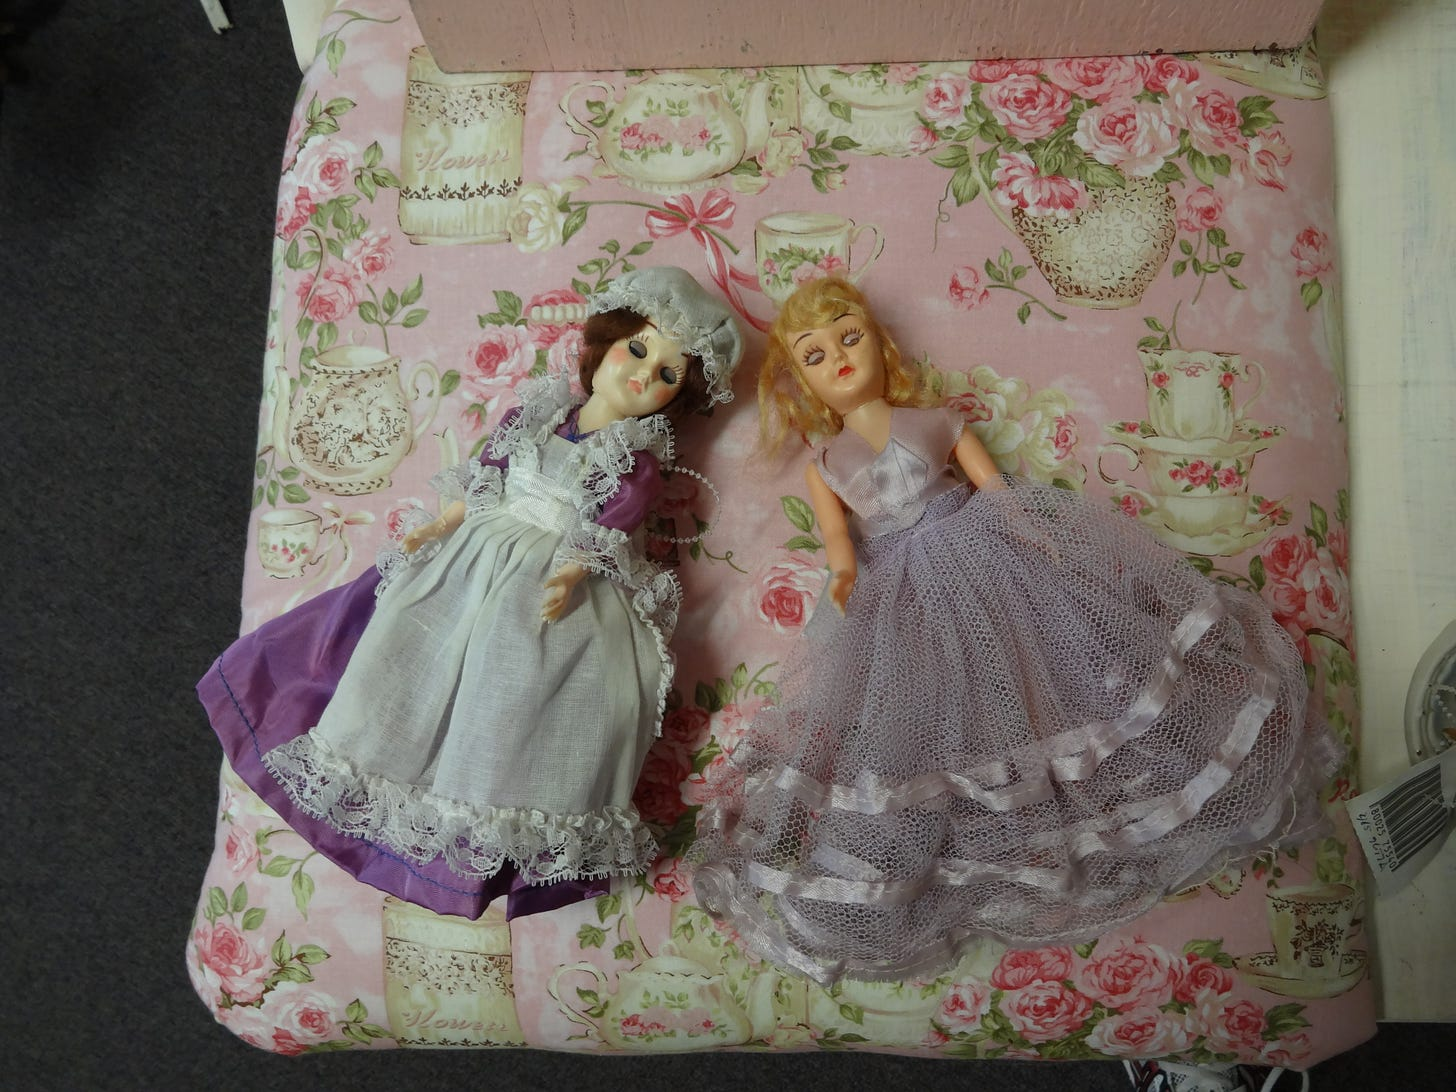 Two antique dolls lying on a chair